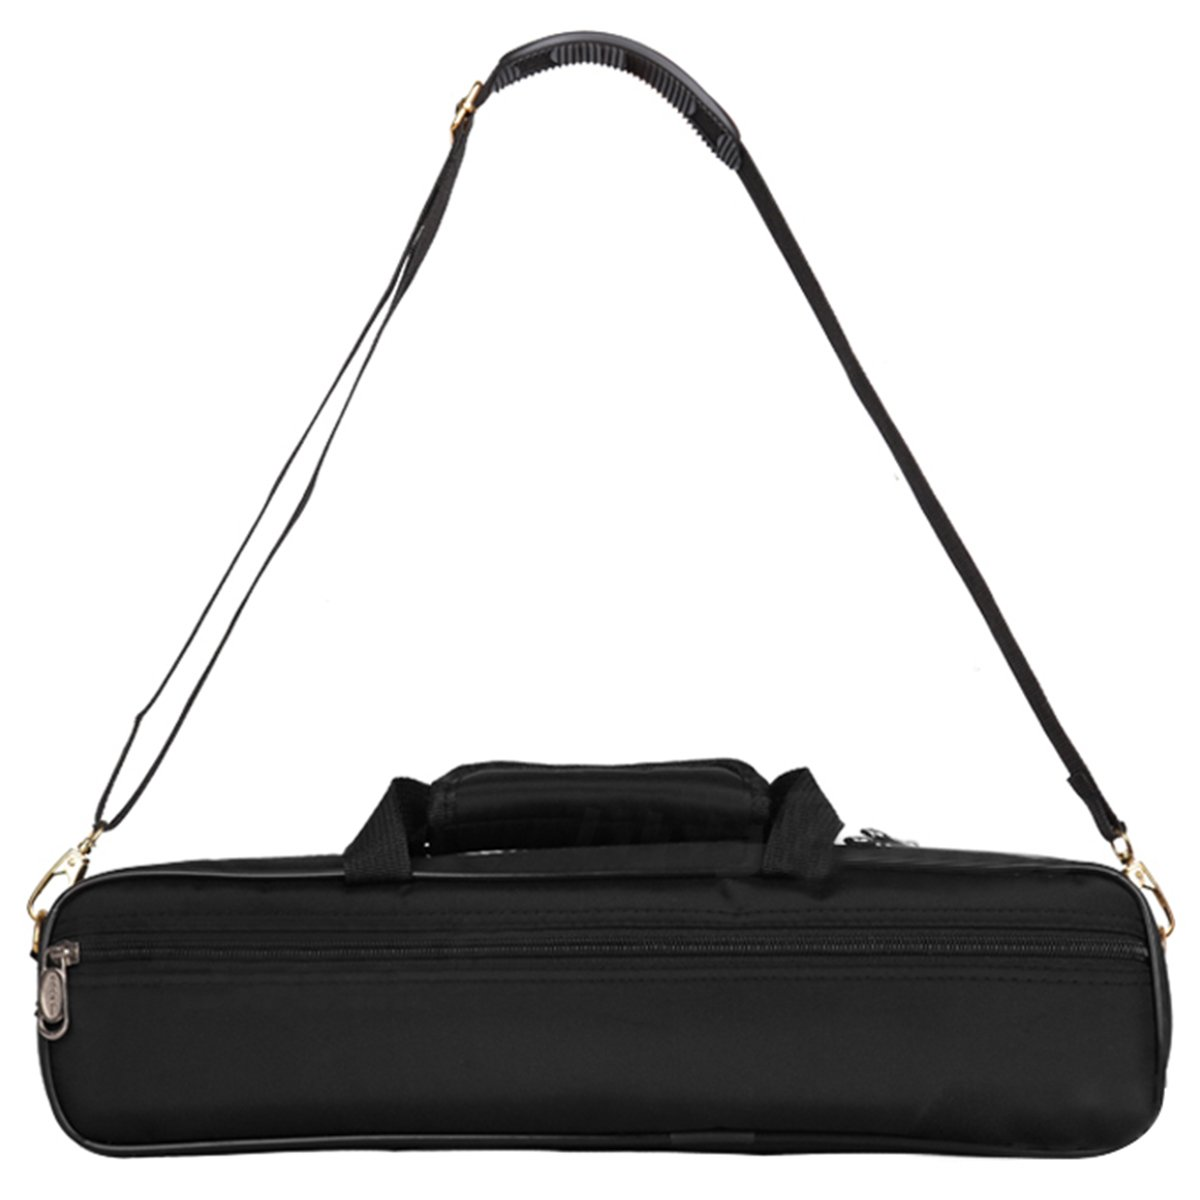 Tosnail Water-resistant Gig Flute Bag with Side Pocket & Adjustable Single Shoulder Strap - 10mm Cotton Padded - Great Bag for Concert Flute T-FluteBag